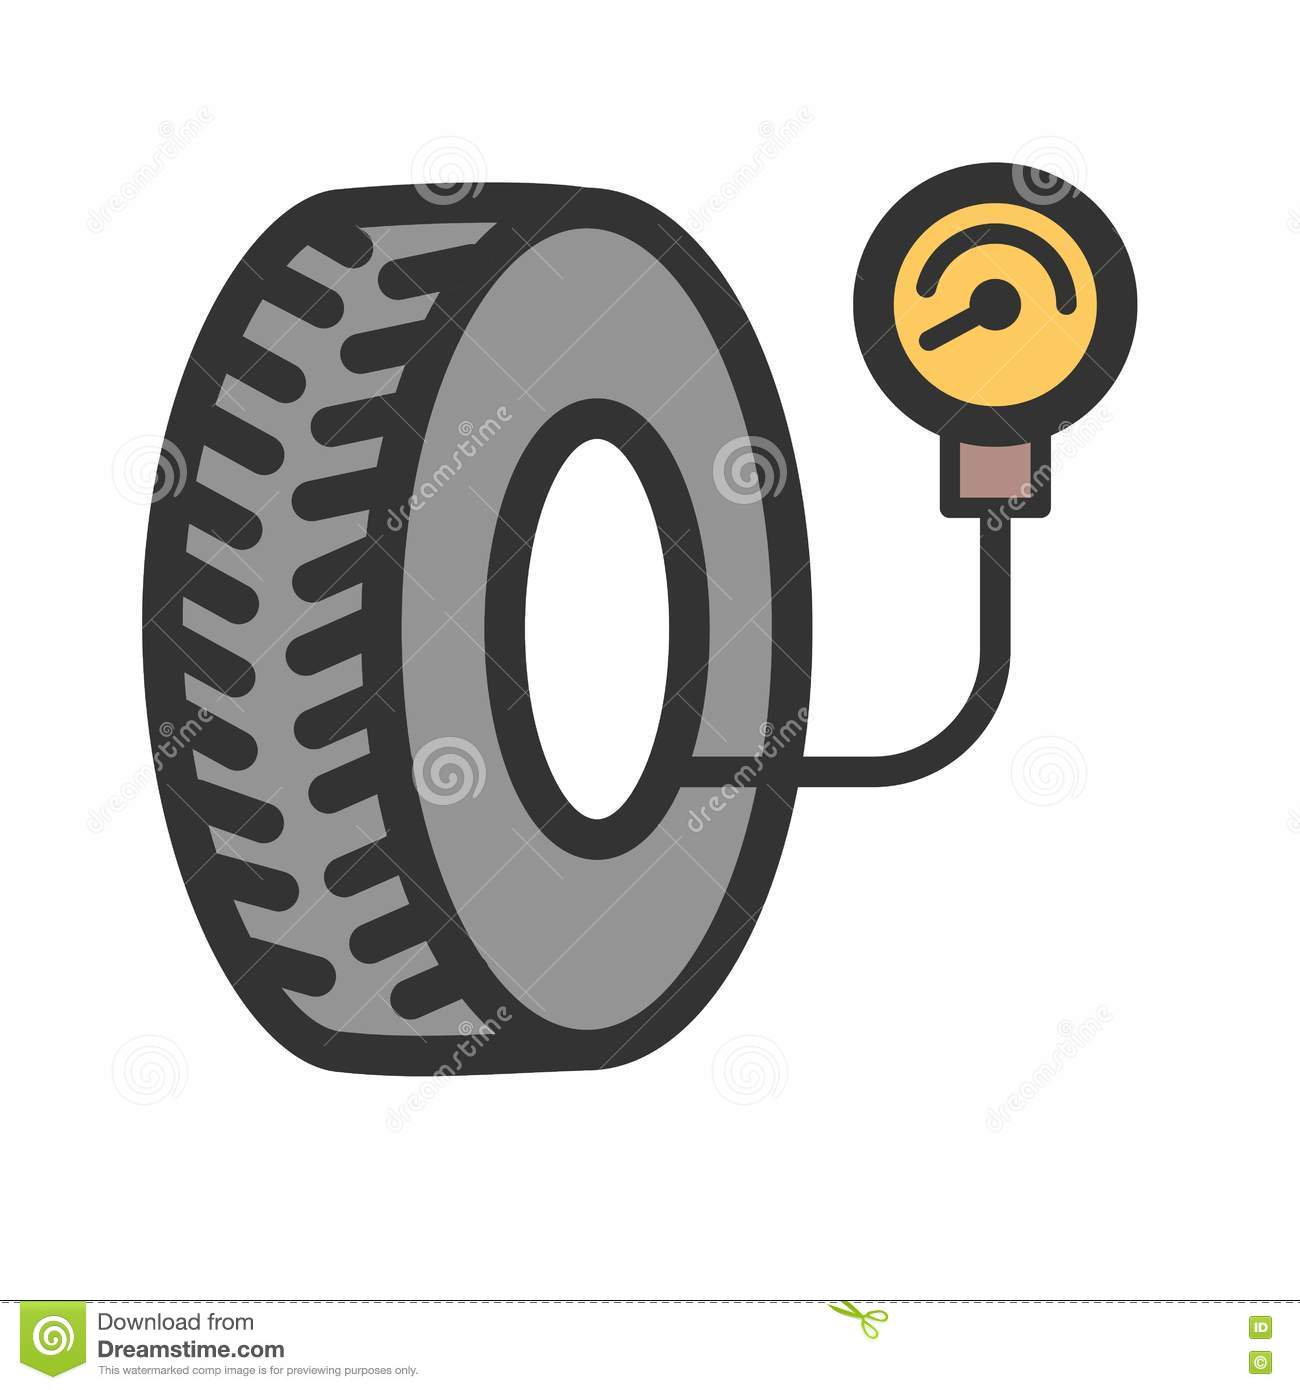 Air clipart air pressure. Tyre checker stock image clipart black and white stock